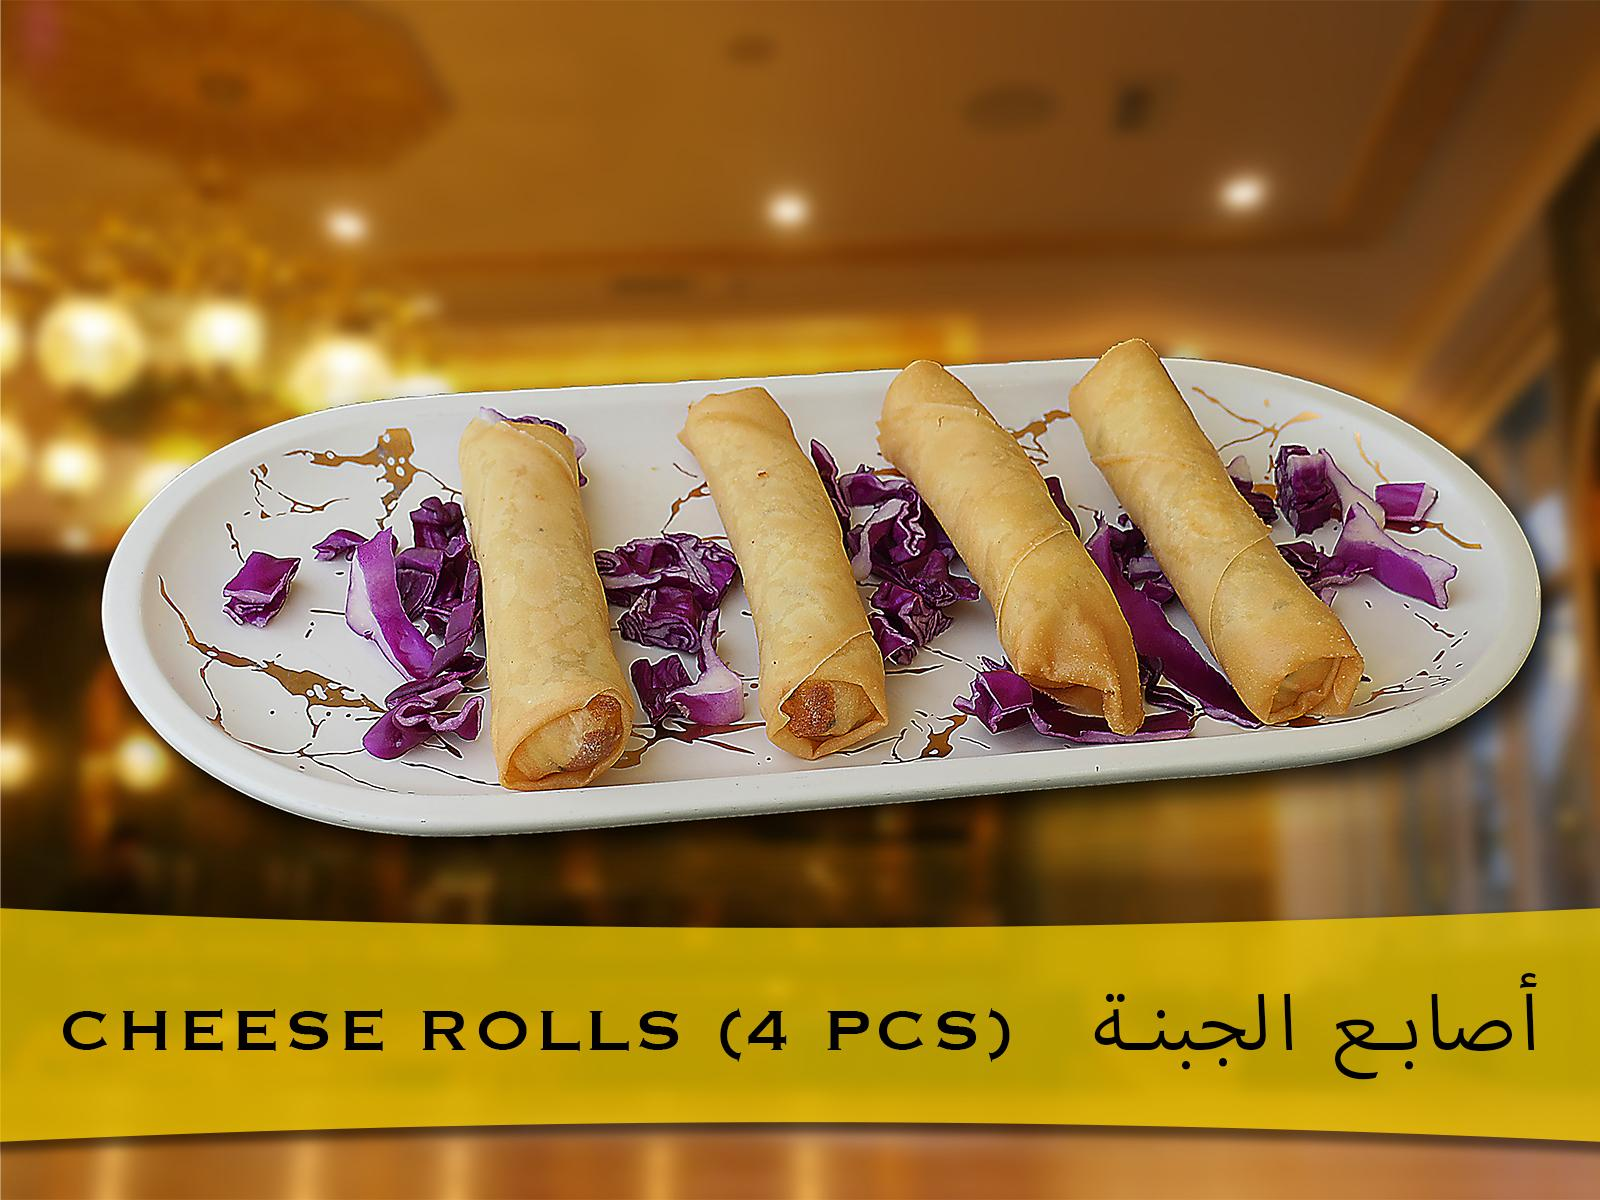 Cheese rolls (4 pcs) Image